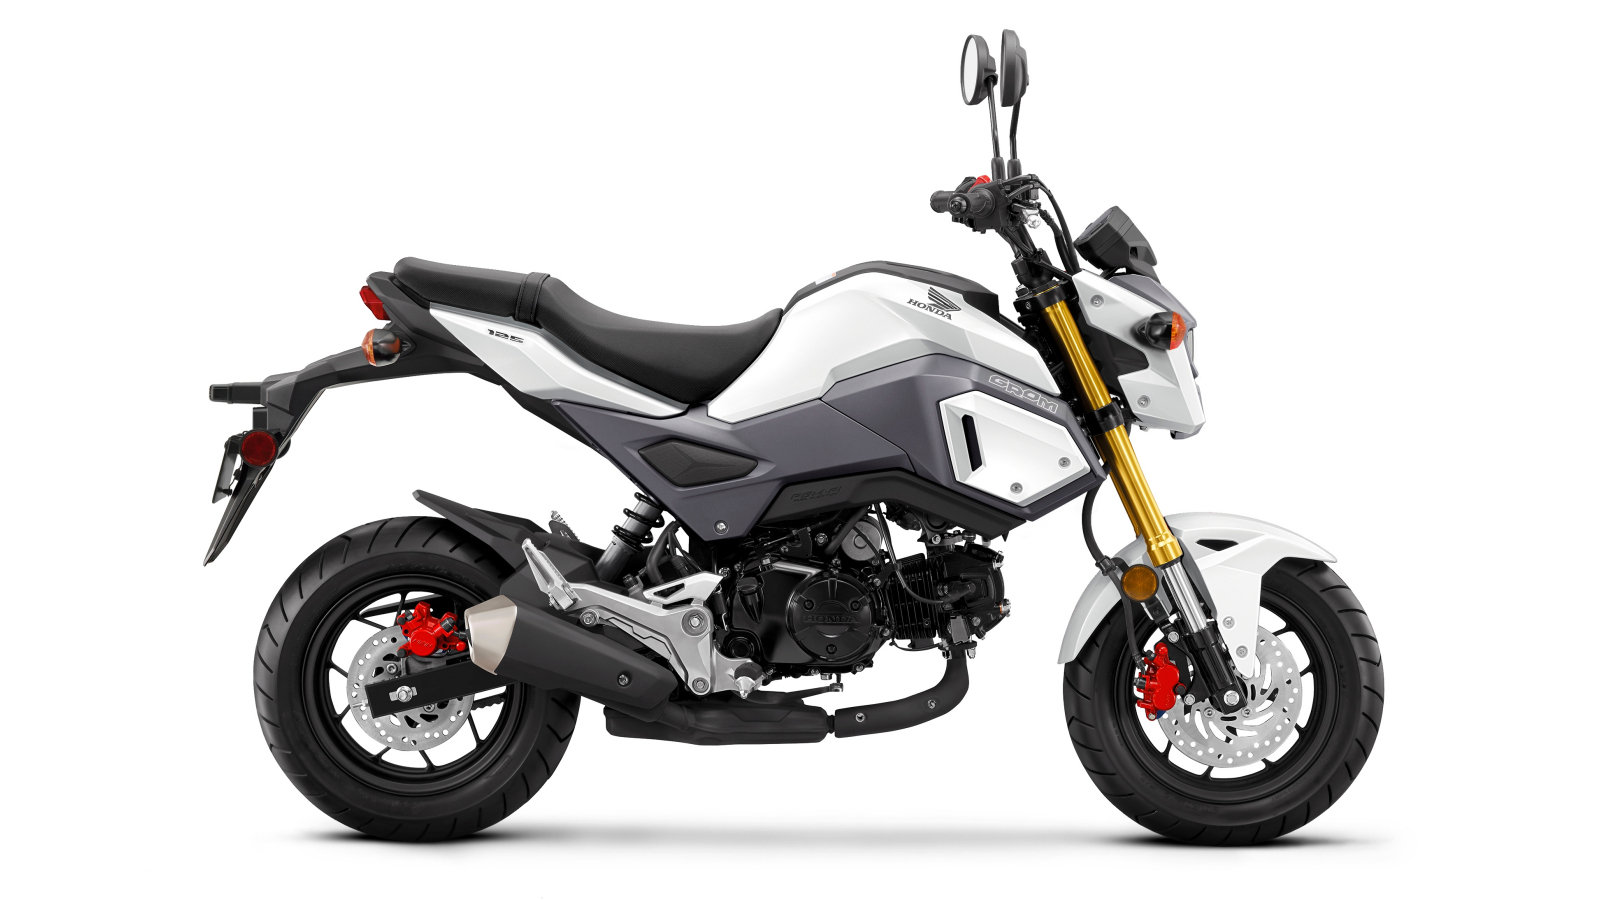 Honda Motorcycle Scooter 2017 2017 Honda Grom Picture 679130 Motorcycle Review Top